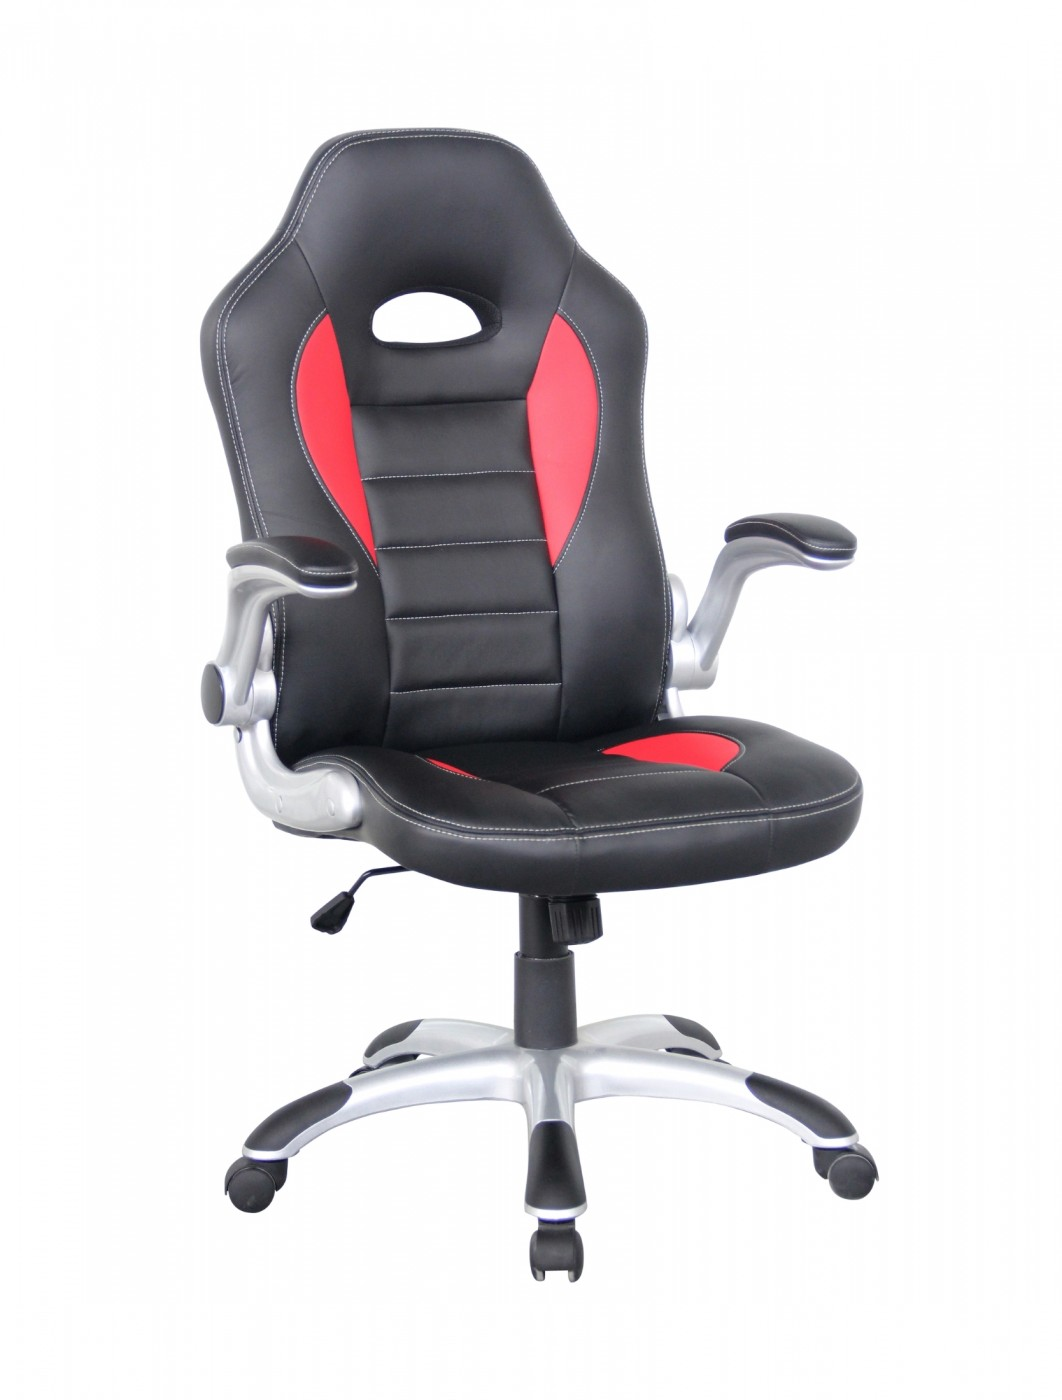 Talladega Racing Style Office Chair AOC8211R 121 Office Furniture